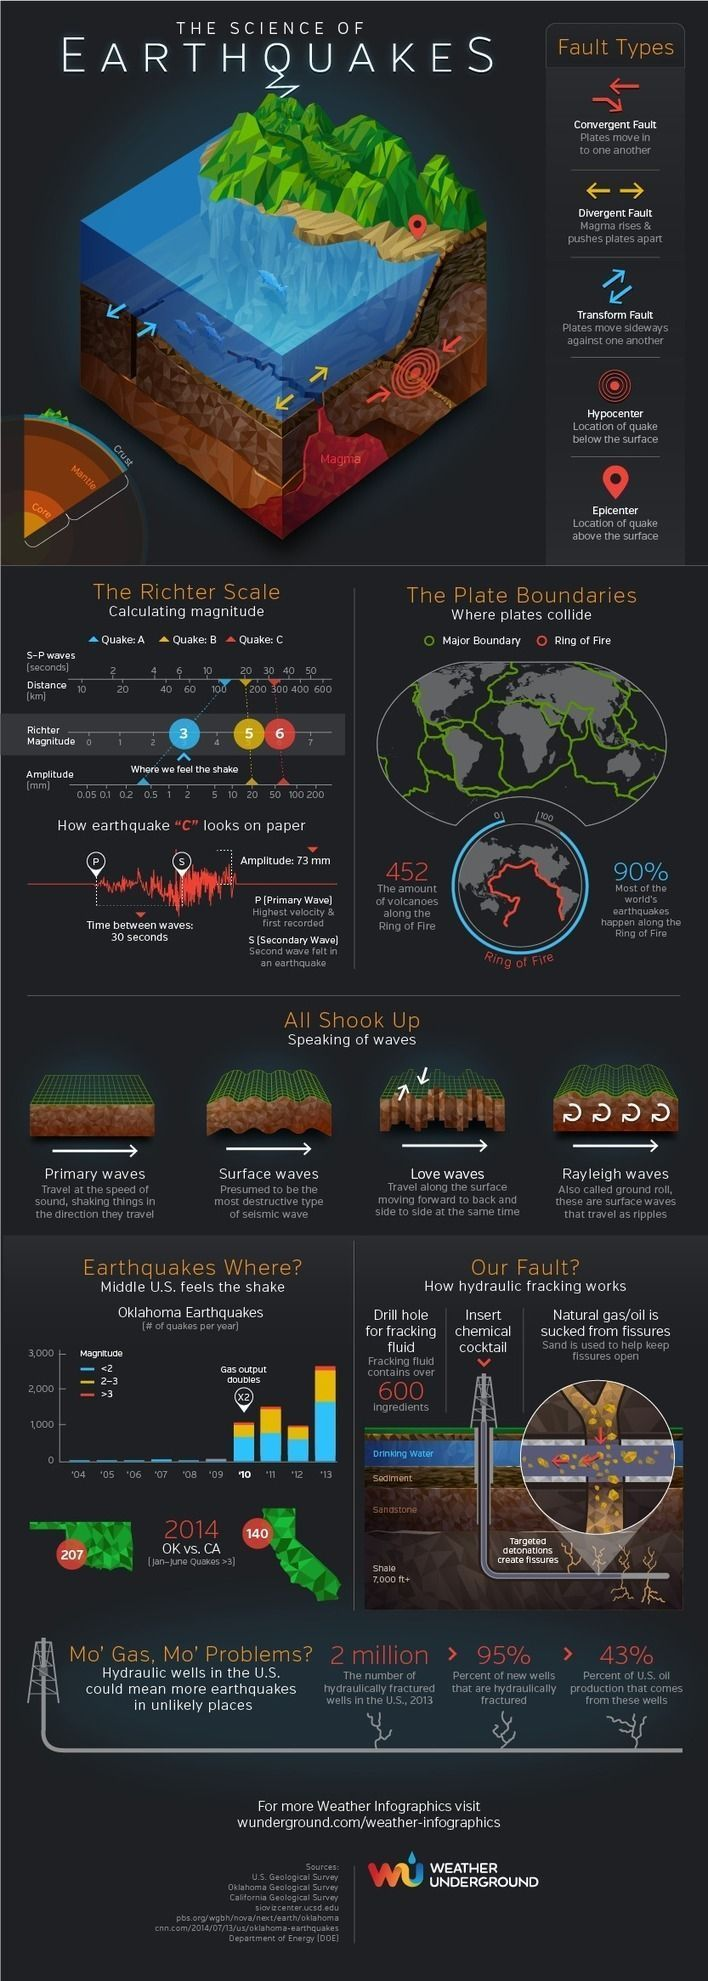 The Science of Earthquakes #Infographic #STEM 3rd & 5th Grade